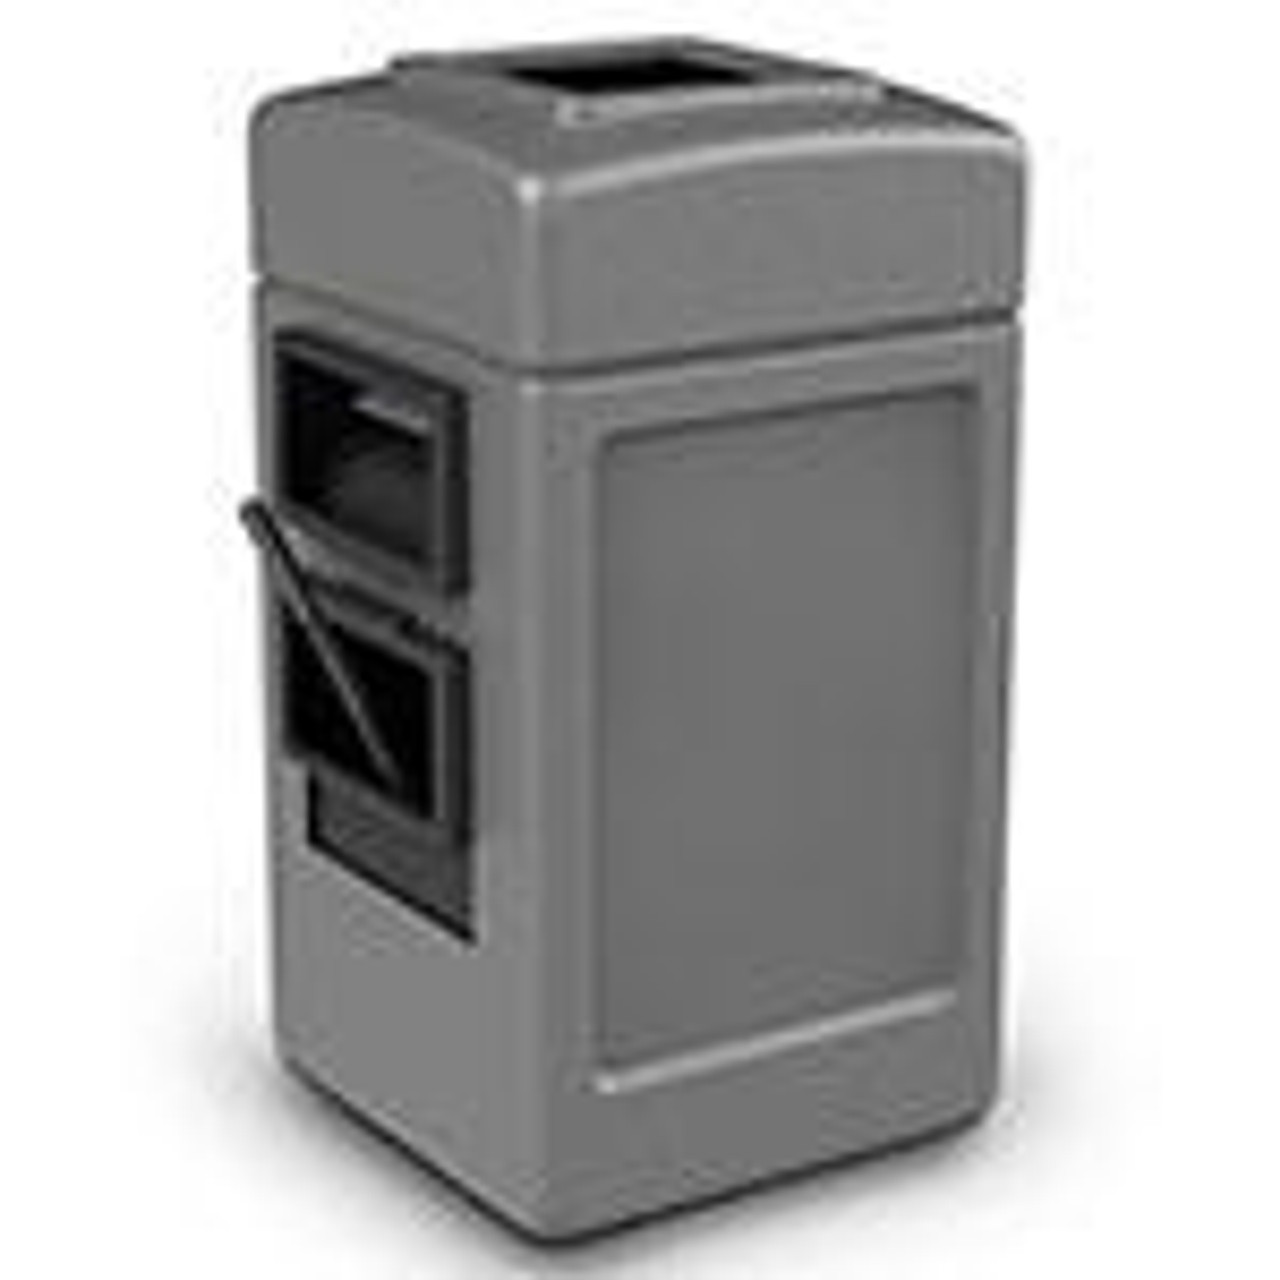 755103 - Waste Container / Washer Combo - Gray